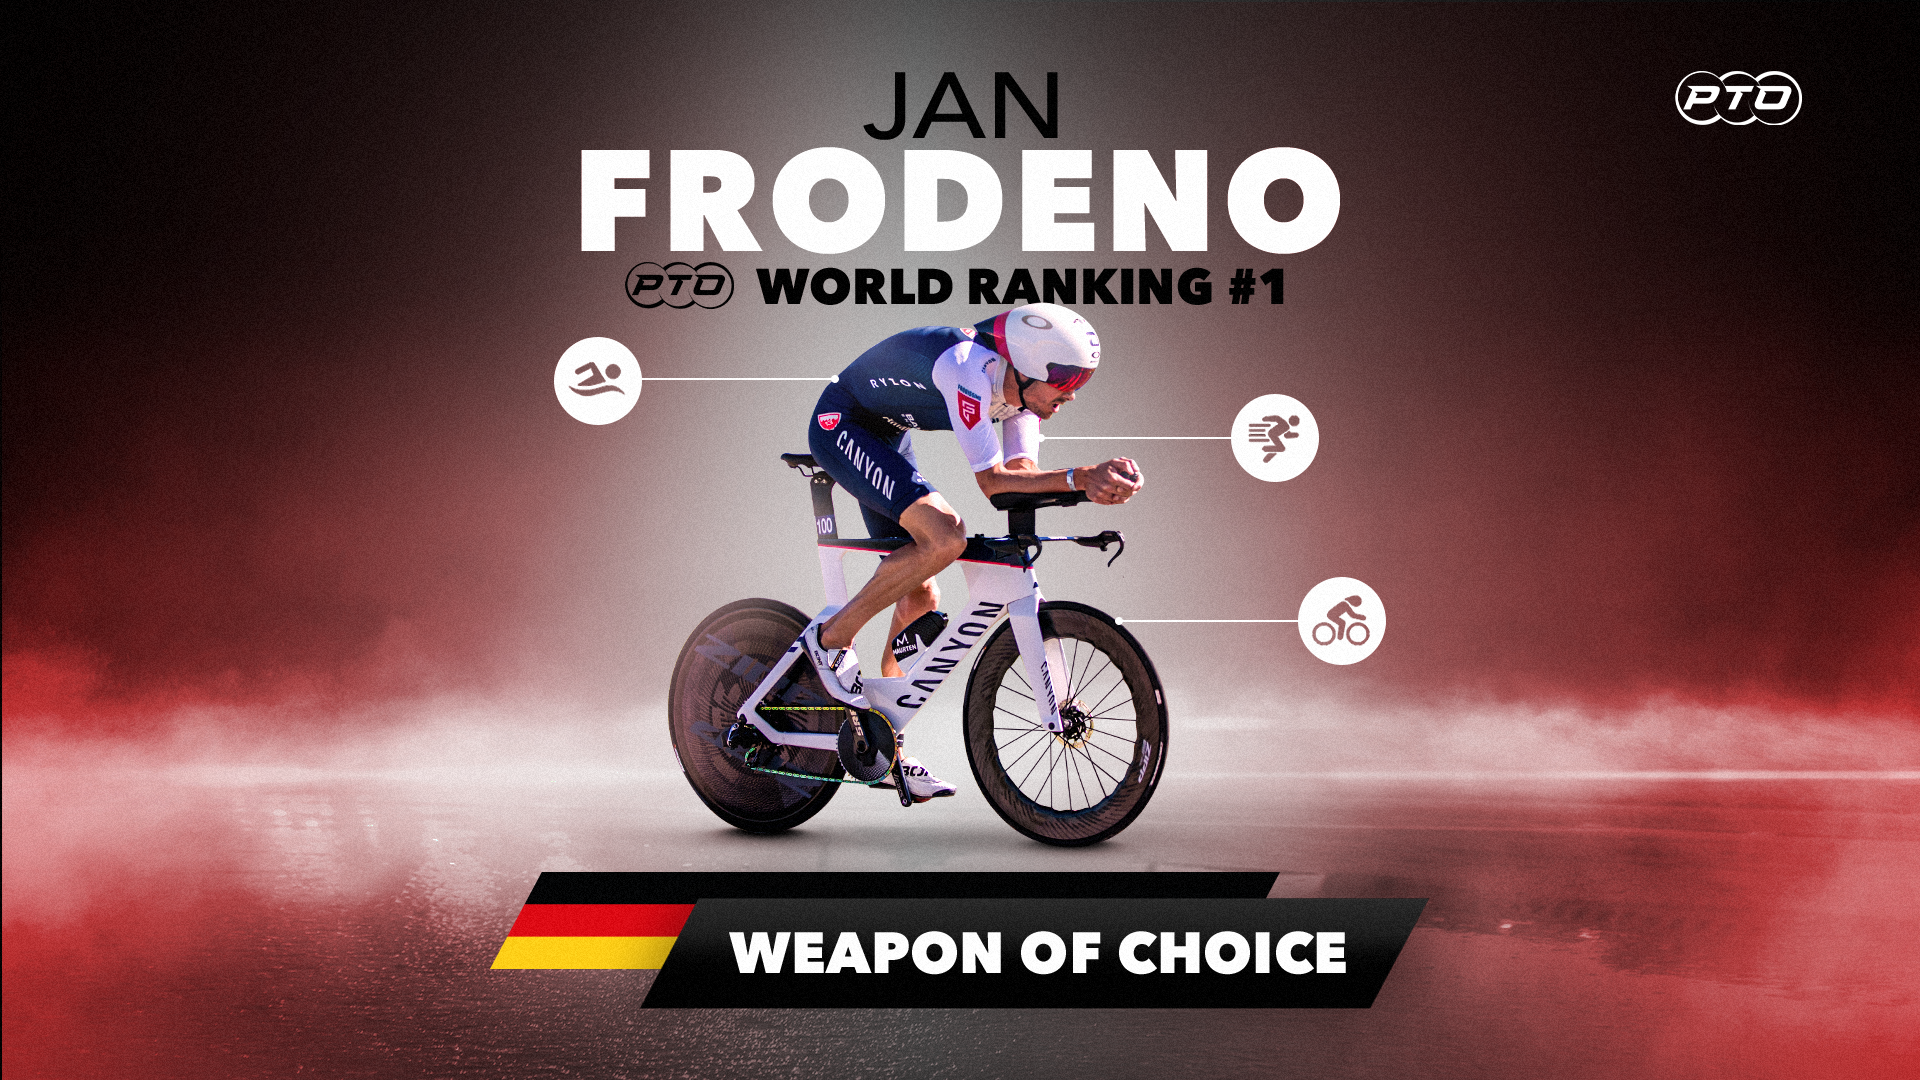 Weapon of Choice    Jan Frodeno